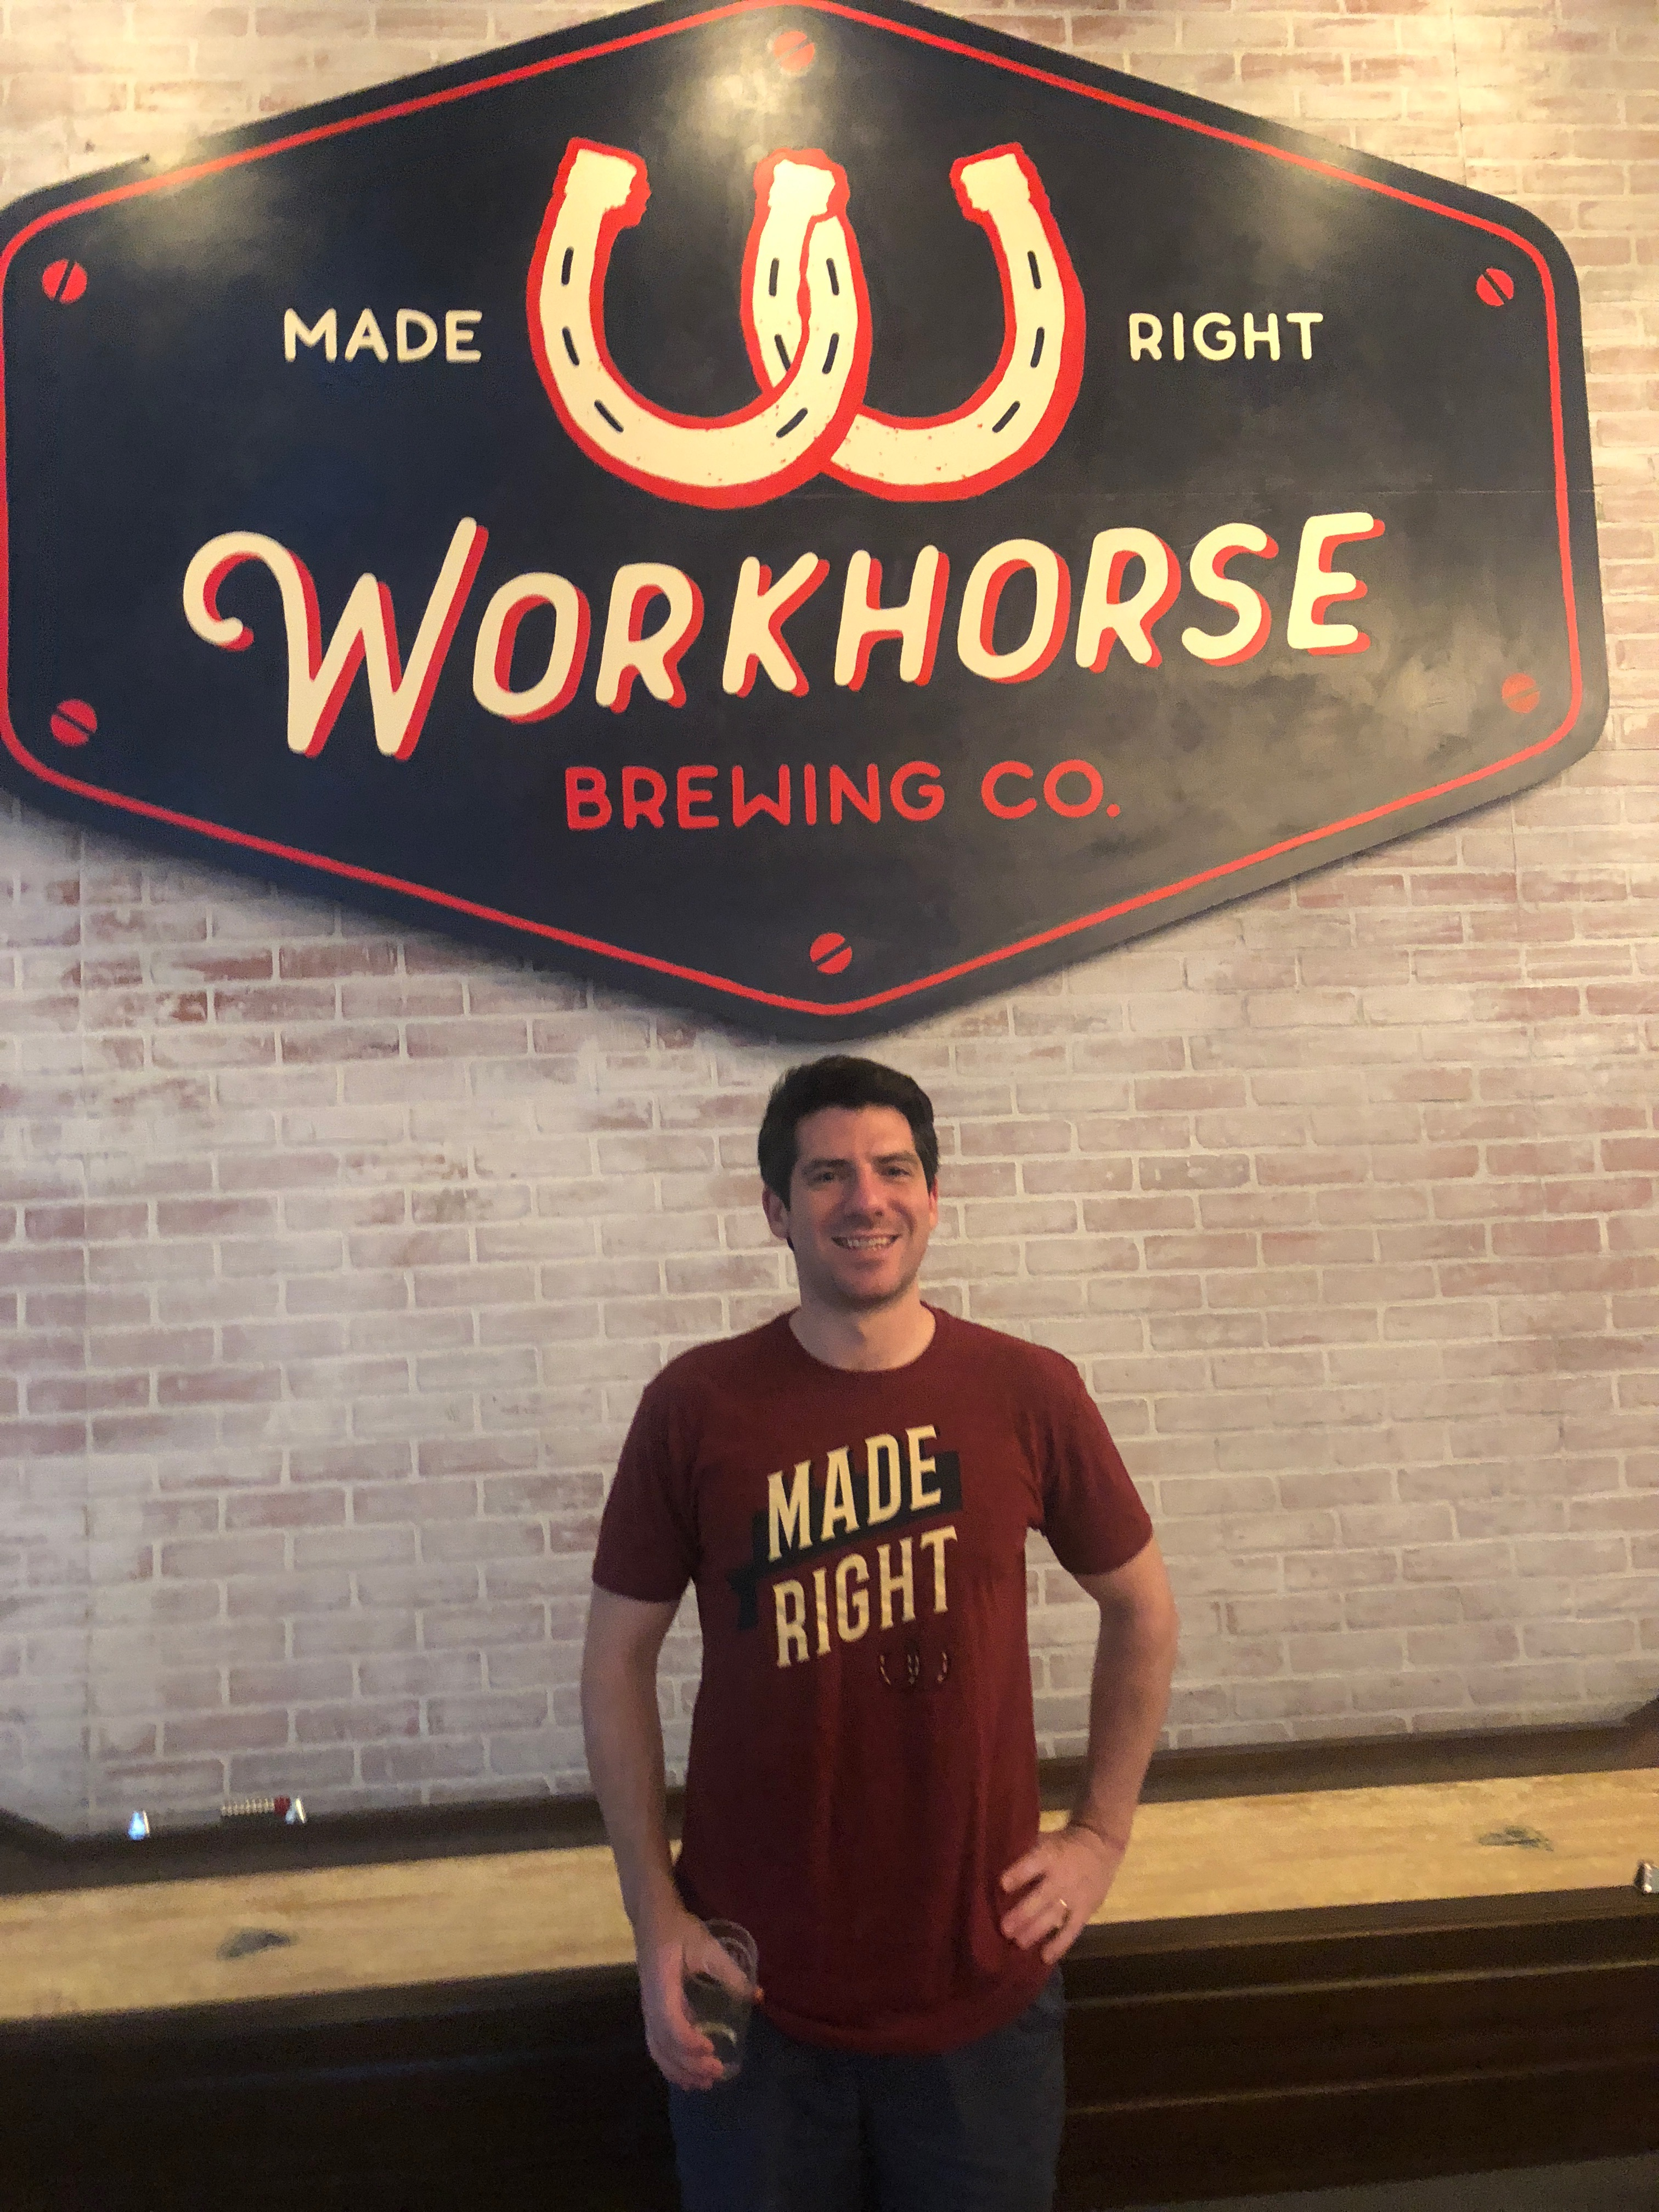 Workhorse Brewing Co., King of Prussia, starts small, dreams big